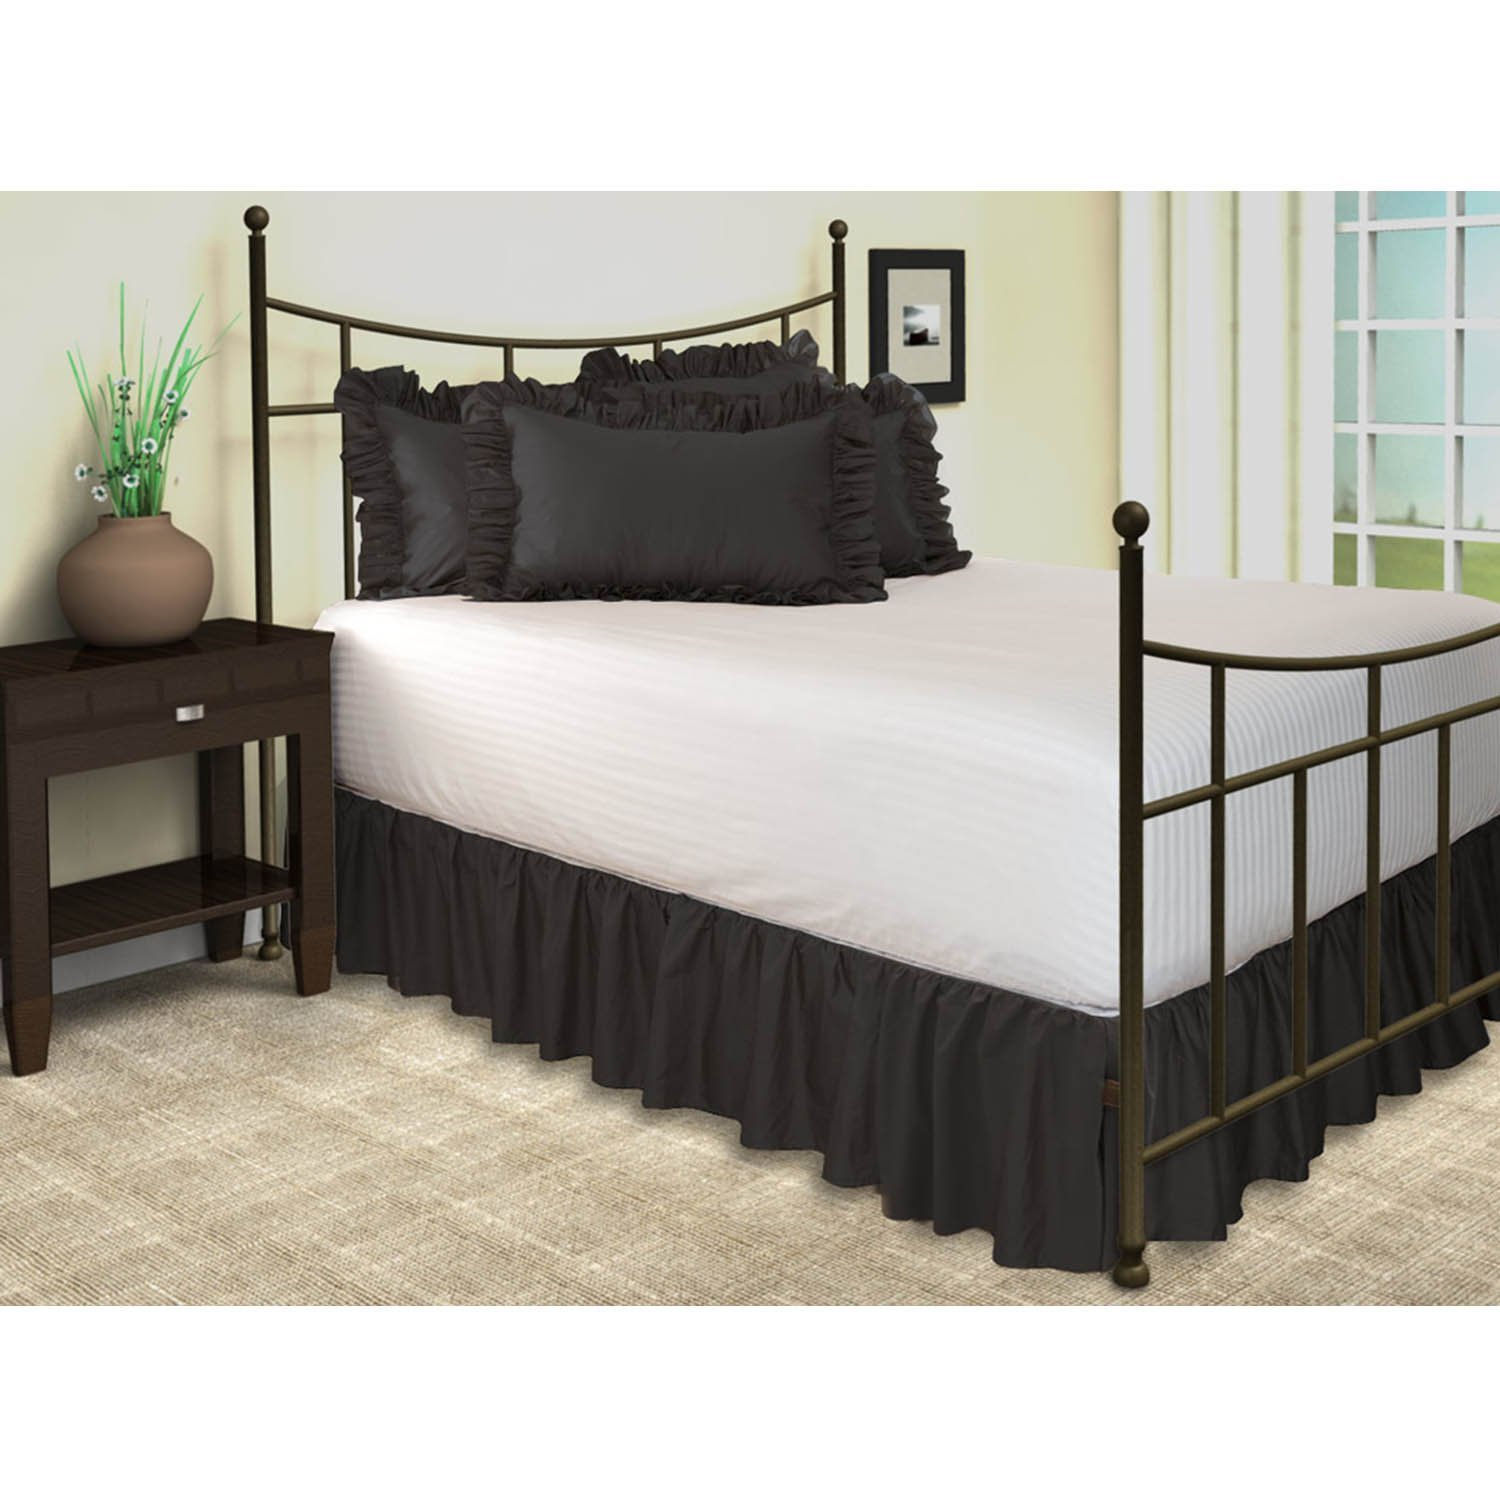 Luxurious Comfort Collection 800TC Pure Cotton Dust Ruffle Bed Skirt 14 Drop length 100/% Egyptian Cotton Navy Blue Queen Size Comfort Bedding Collection